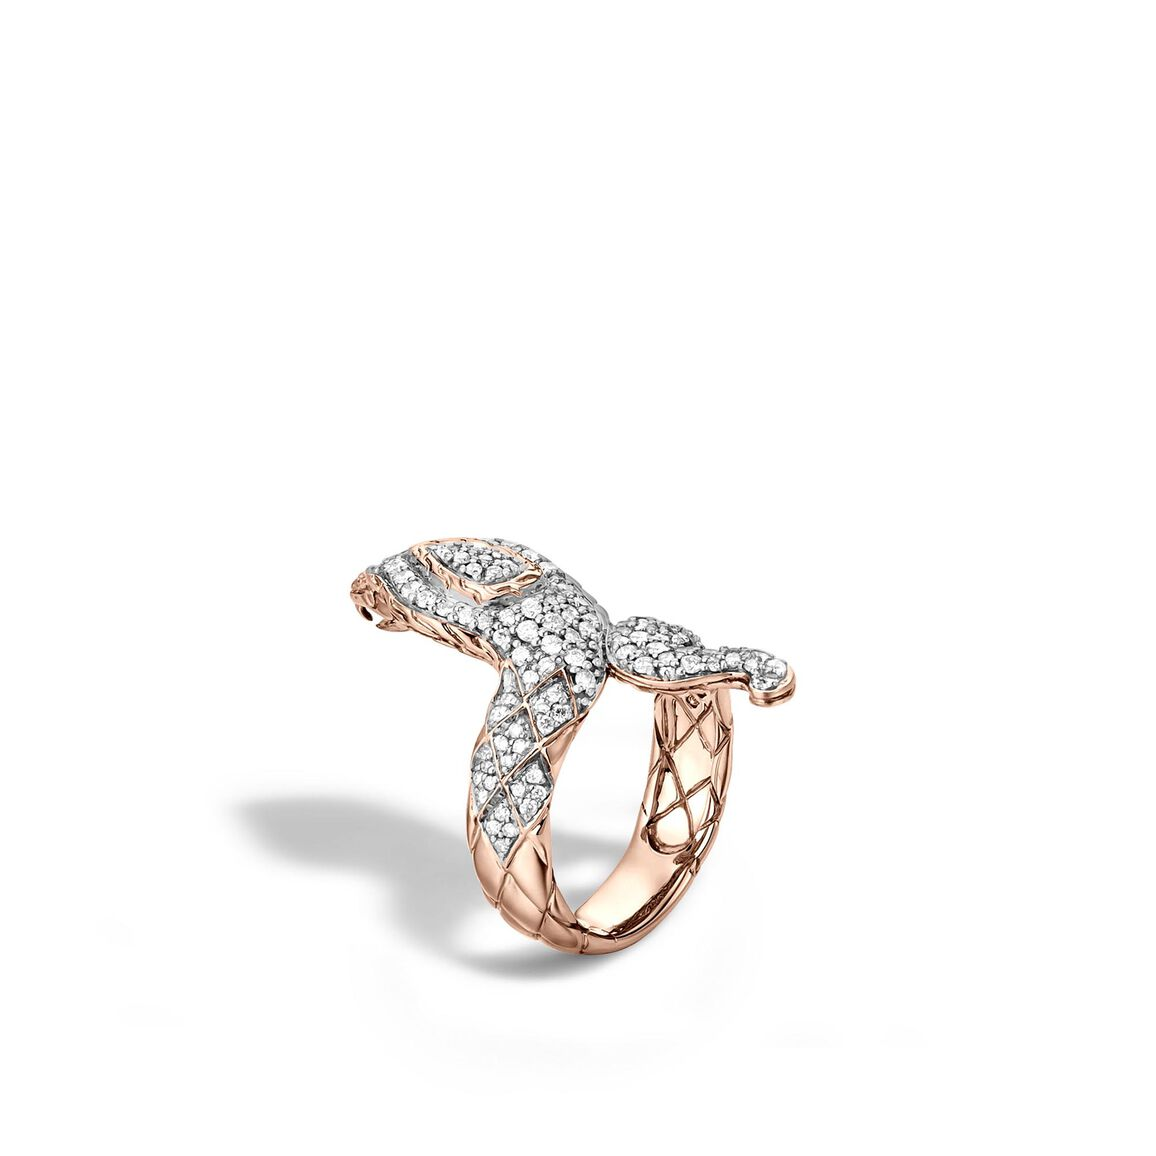 Legends Cobra Ring in 18K Gold with Diamonds